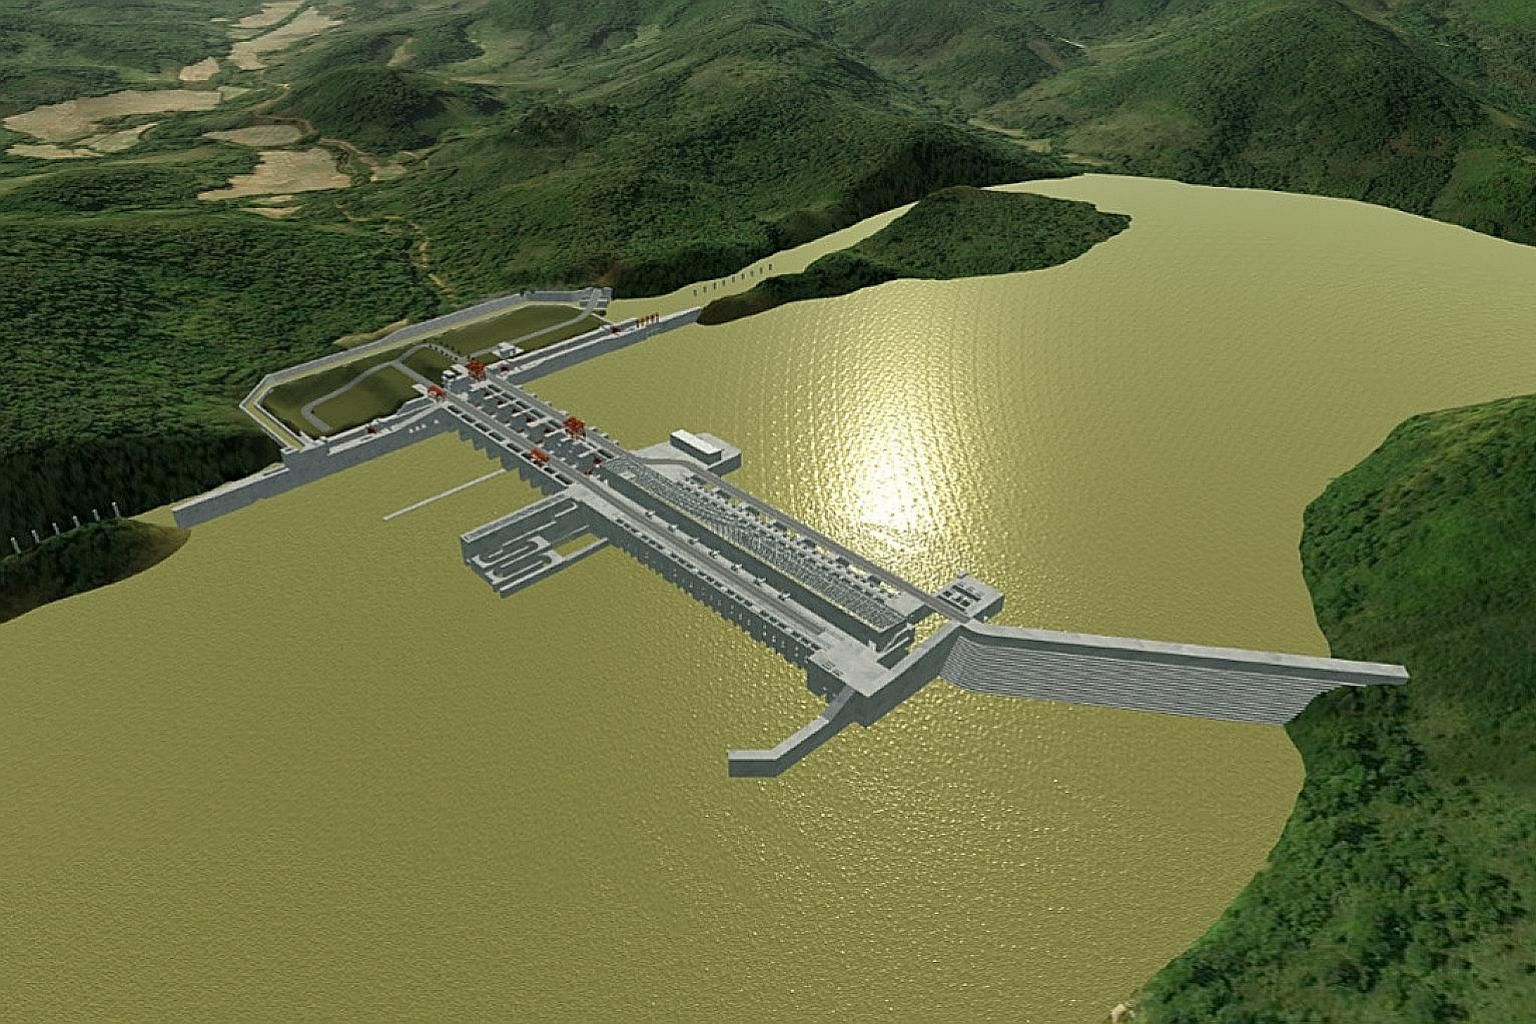 An artistic rendering of the proposed 1,400MW Luang Prabang hydropower dam on the Mekong River in Laos as seen in an undated handout. Environmentalists have warned that dams will harm fisheries and farming.